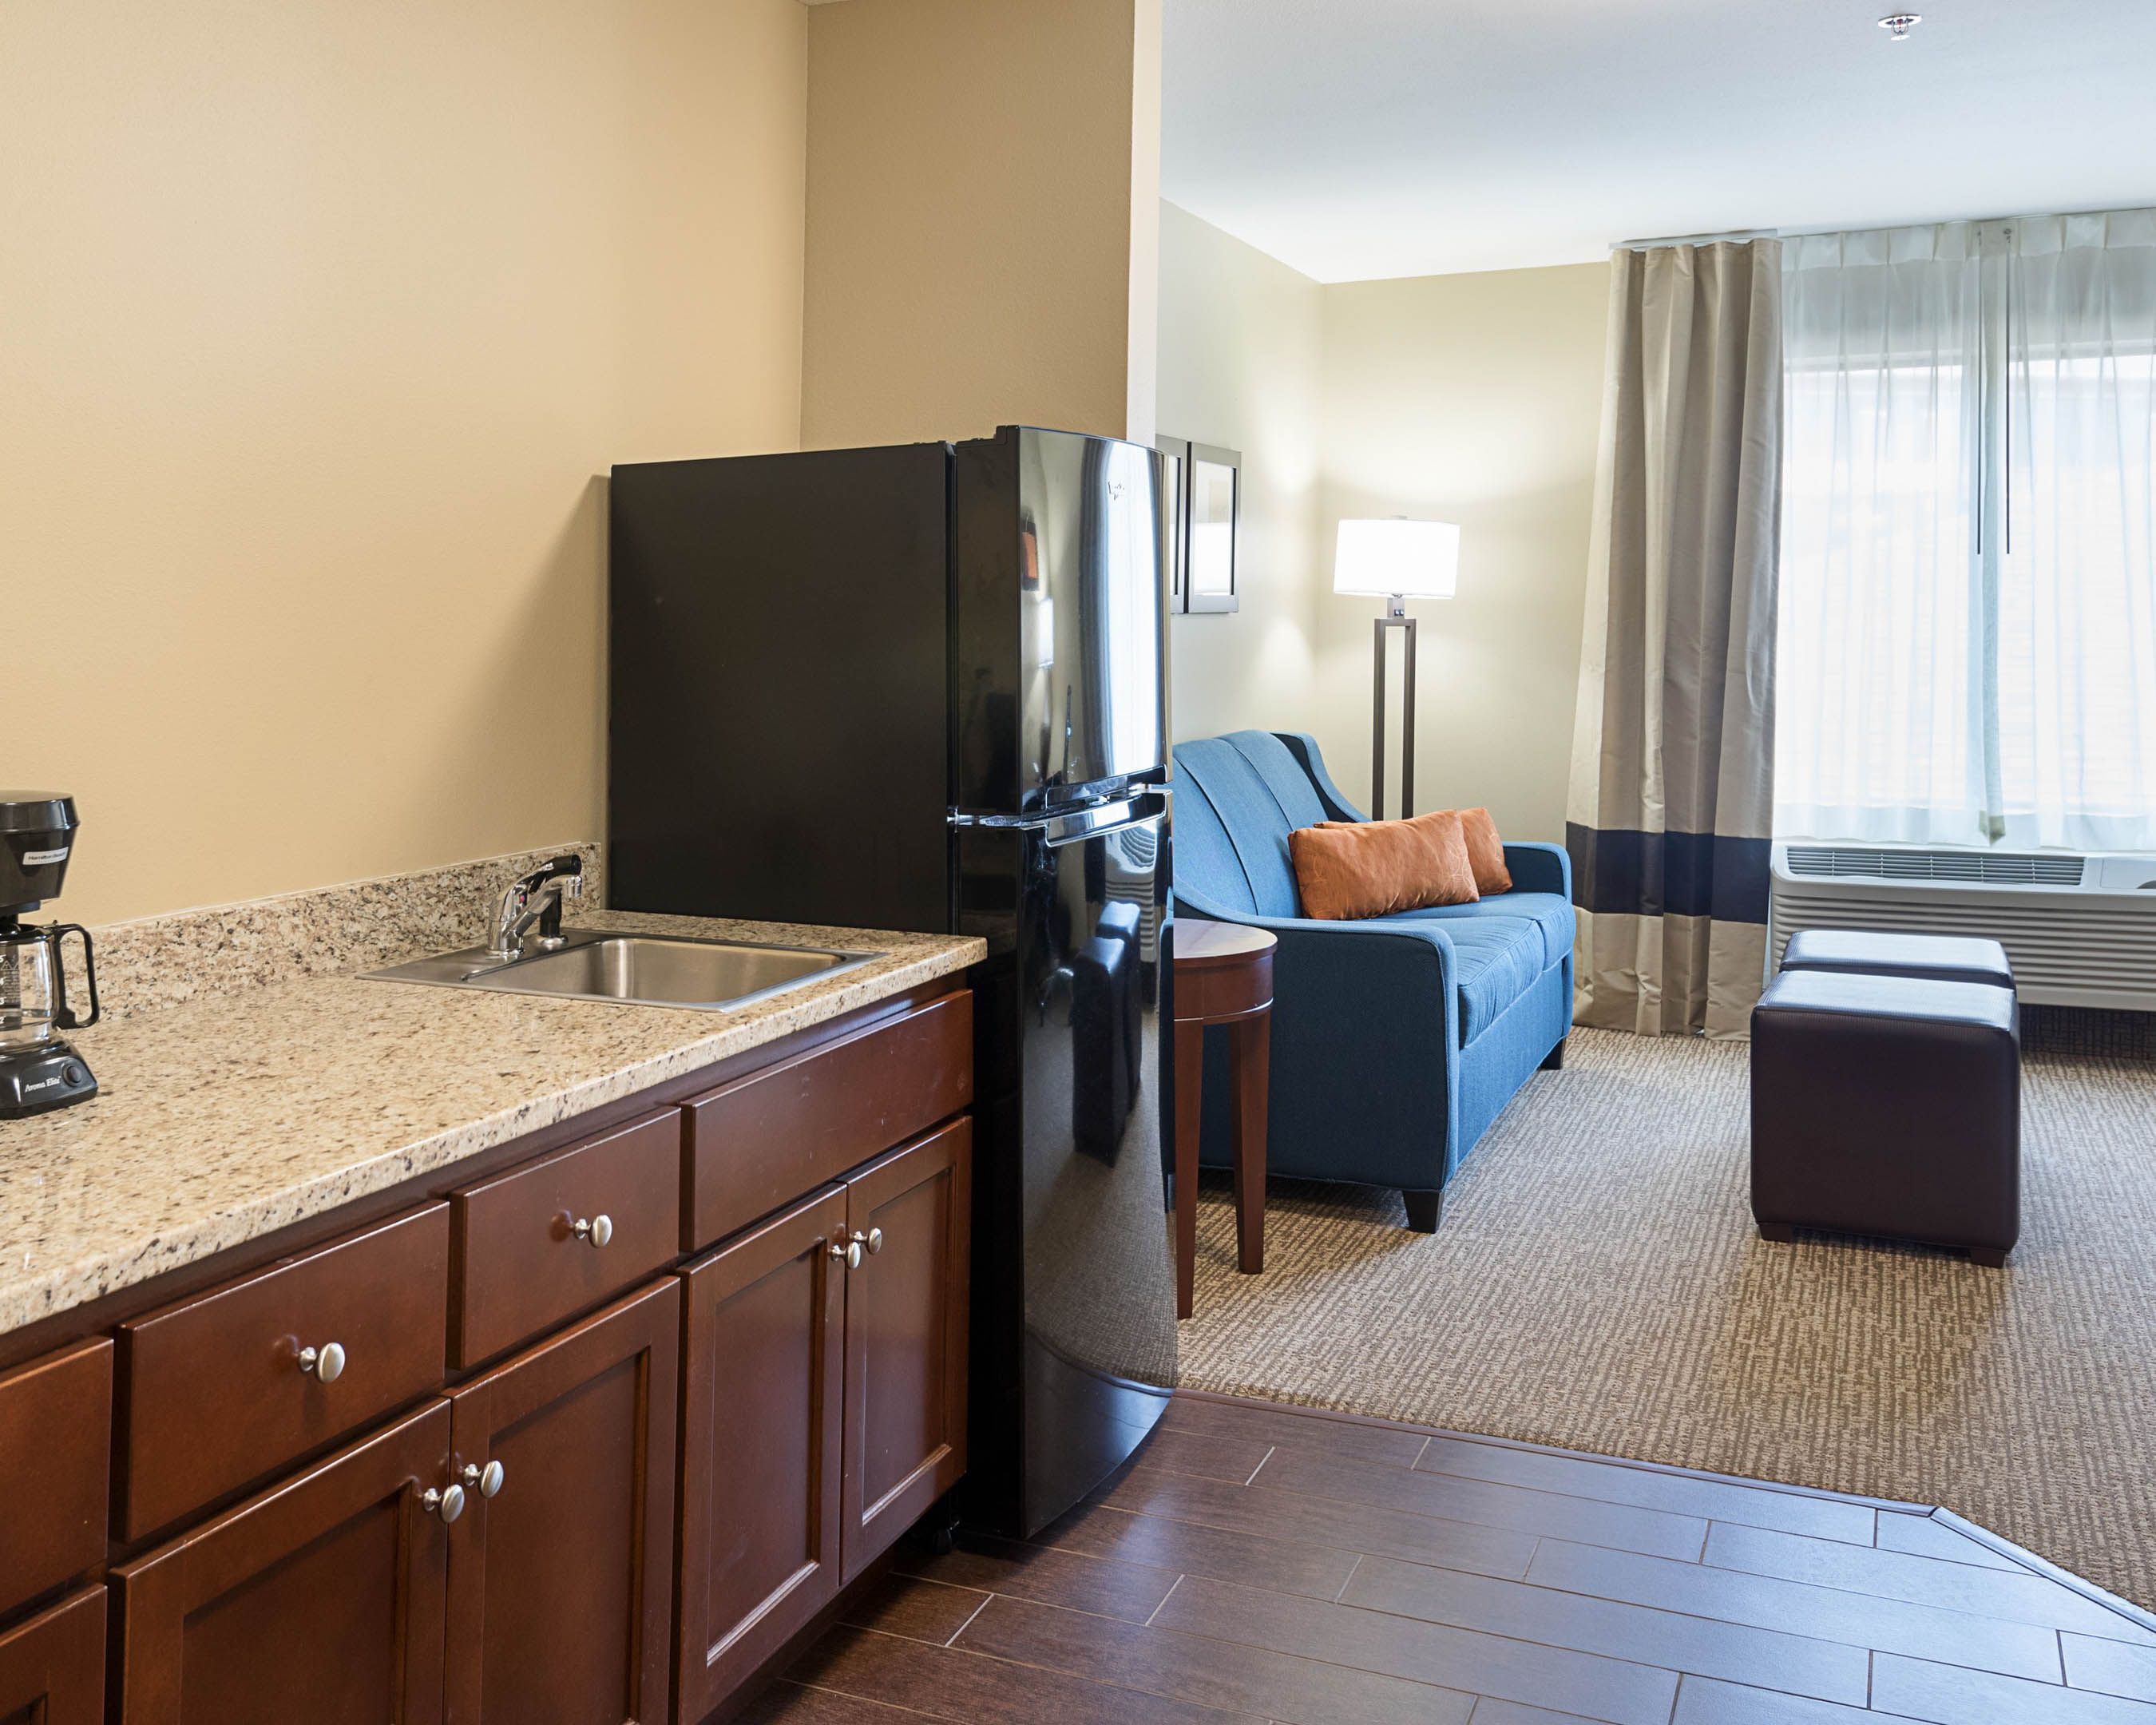 Our One Bedroom Suite Bedroom Suite Home Decor Kitchen Cabinets